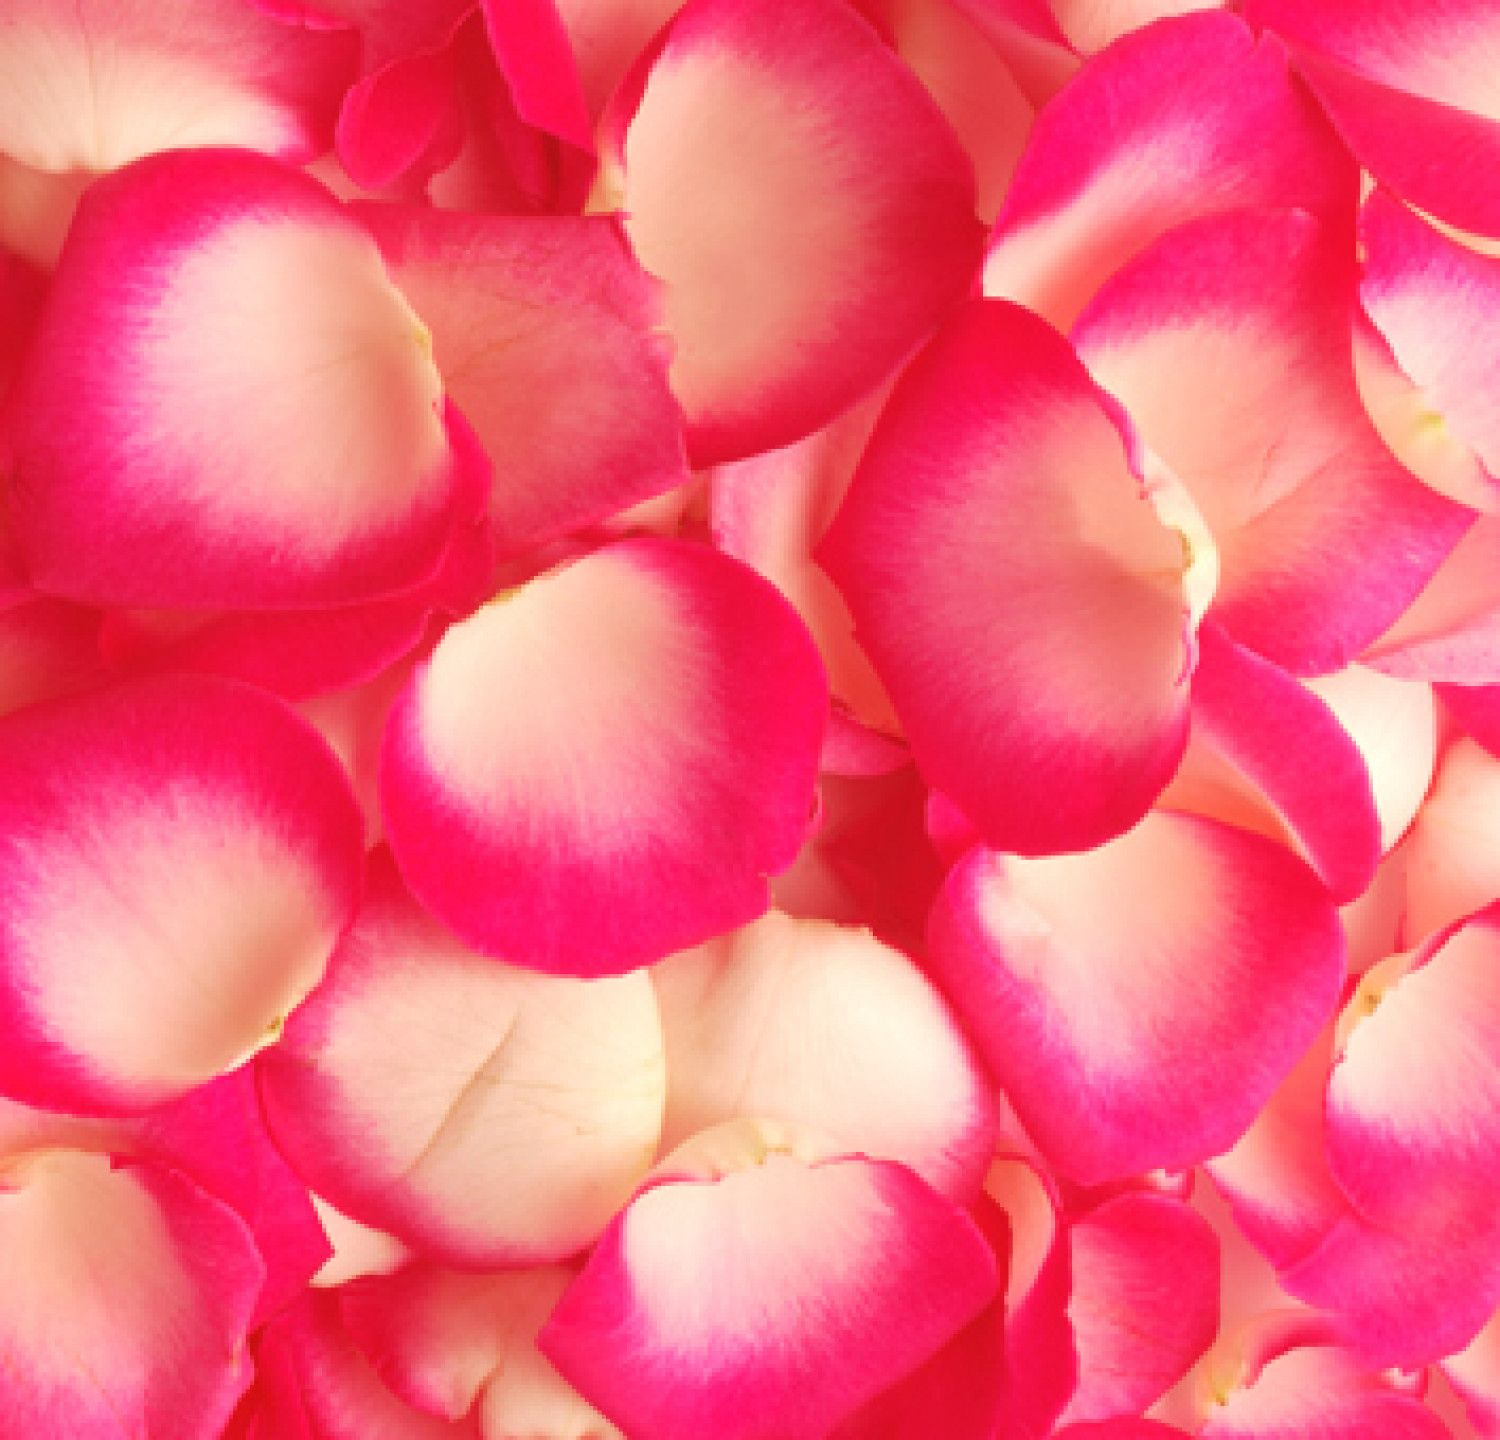 Pin by wholeblossoms on bulk rose petals wholeblossoms do you want to buy bulk rose petals at a discounted rate just visit http mightylinksfo